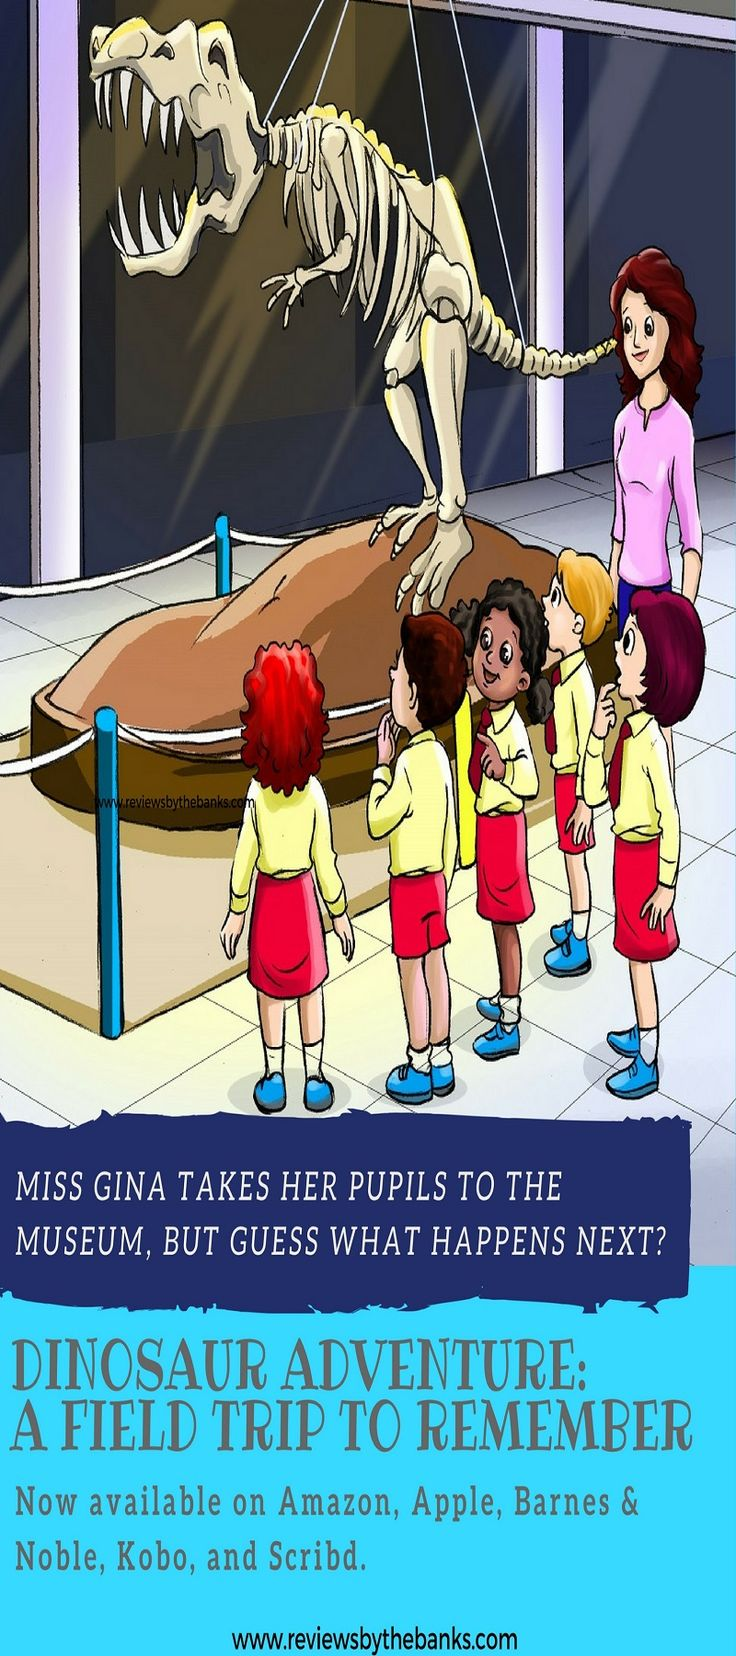 Dinosaur Adventure: A Field Trip to Remember is the second book in the series Let's Learn while Playing by Kelly Santana-Banks